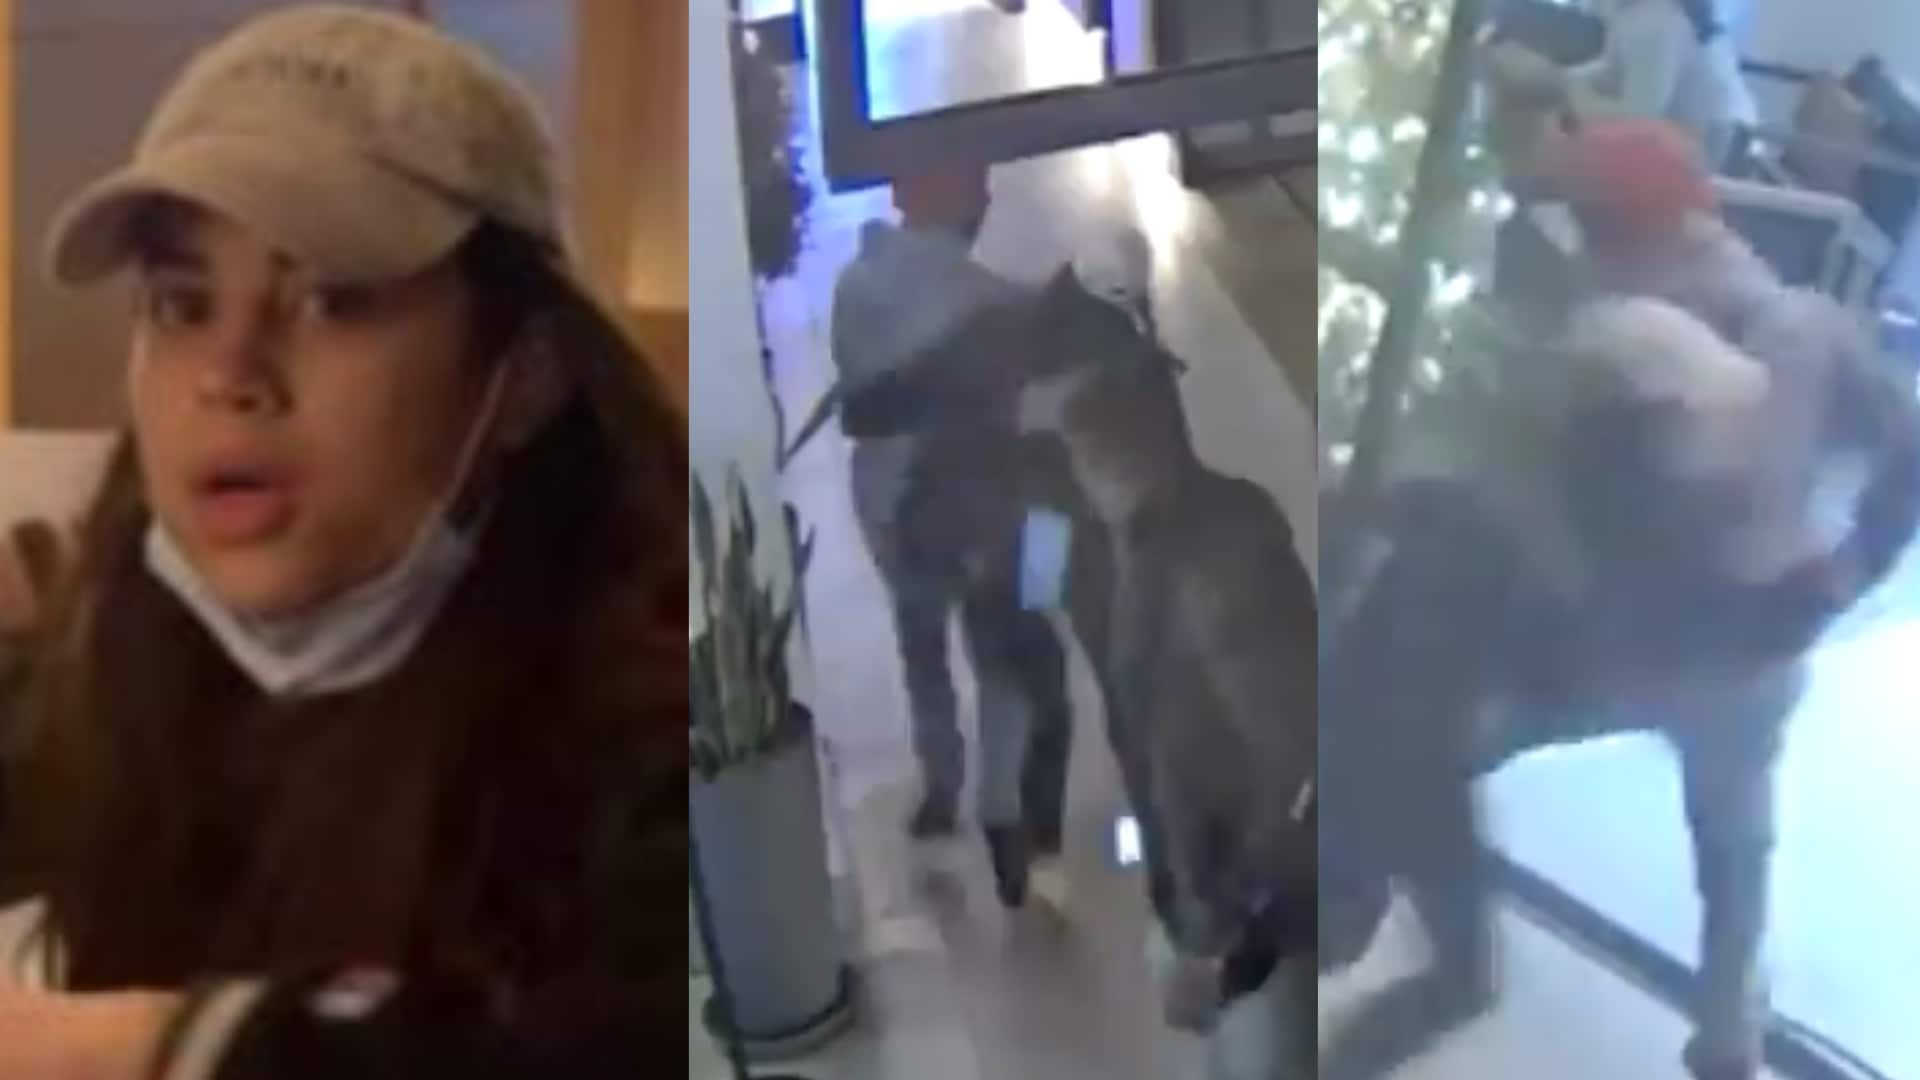 New video shows woman attacking Black teen at Arlo Hotel over iPhone